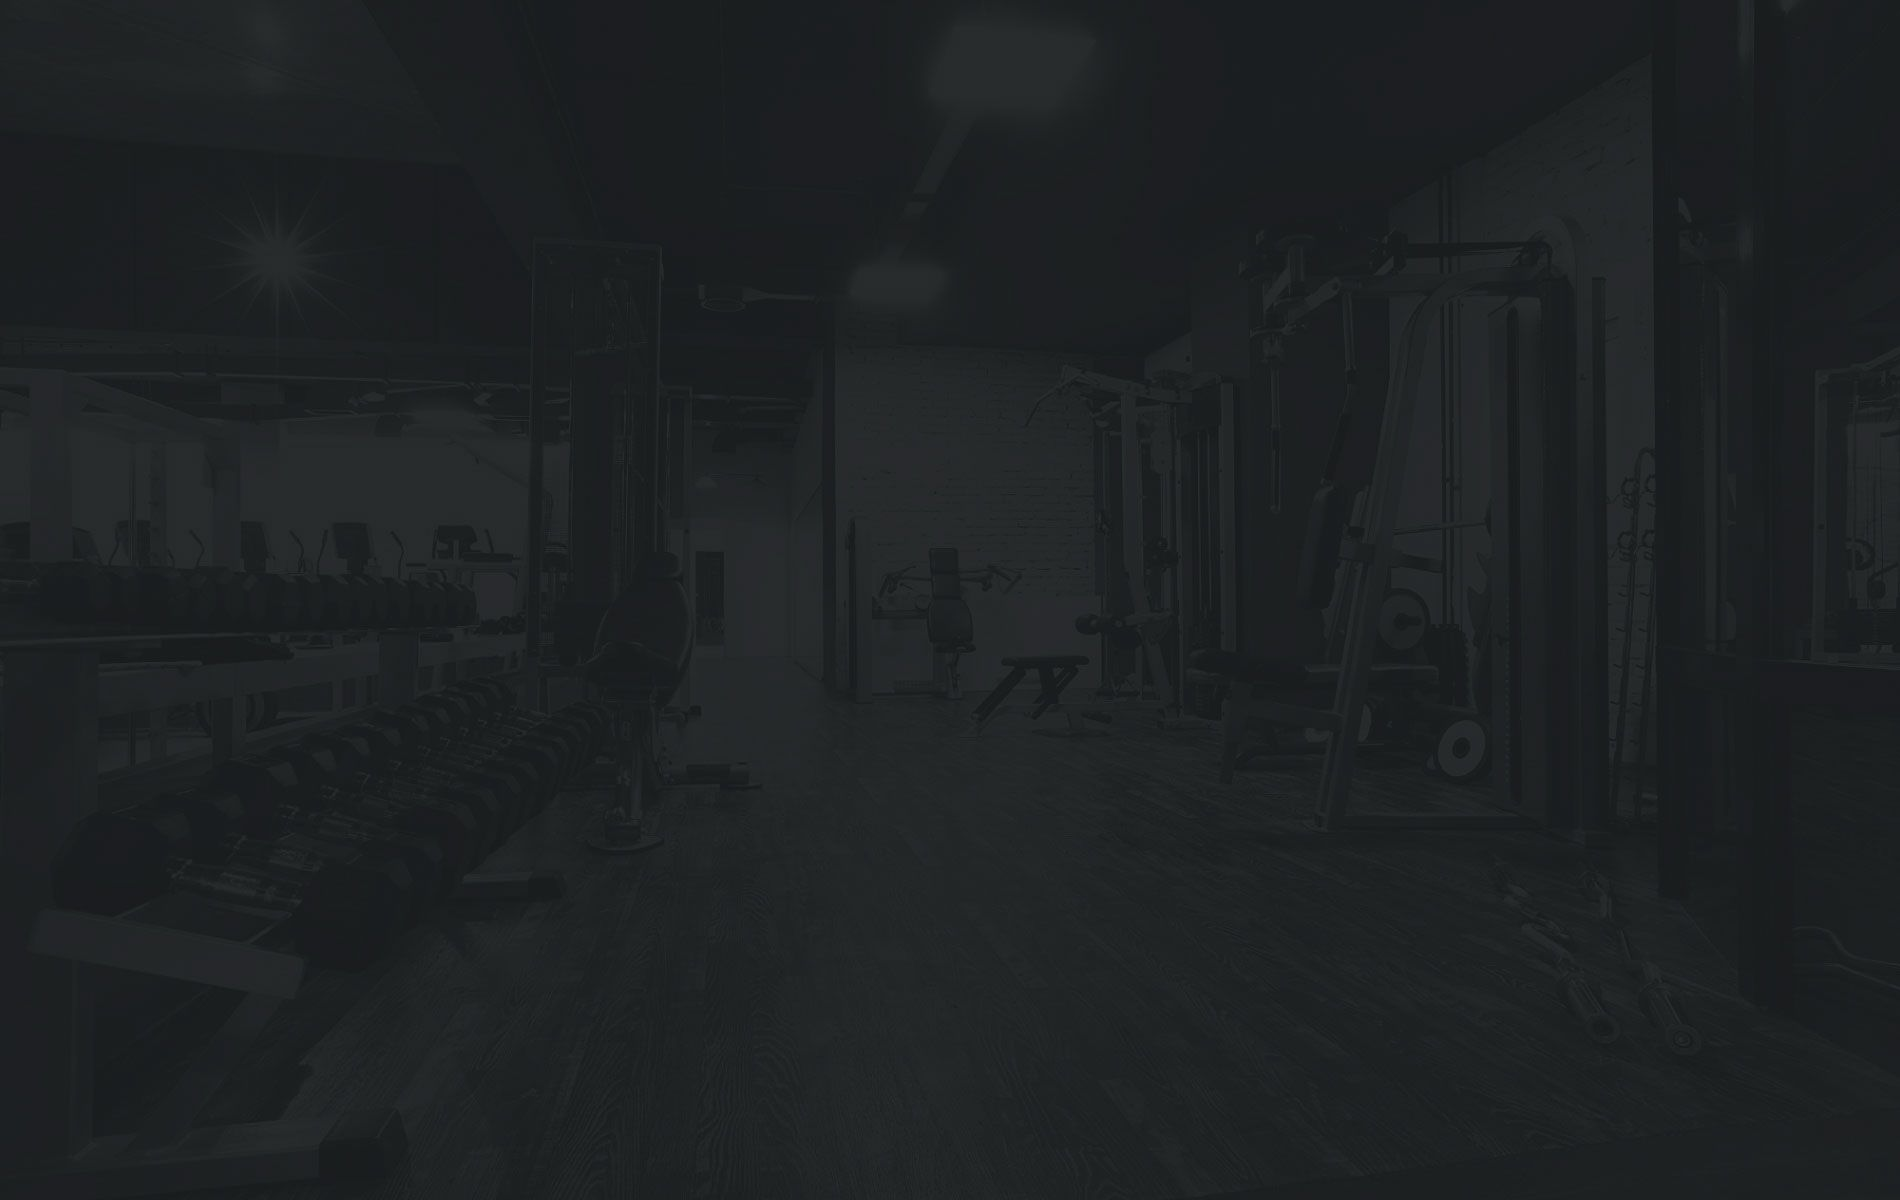 gym_bkgd_bw-compressor